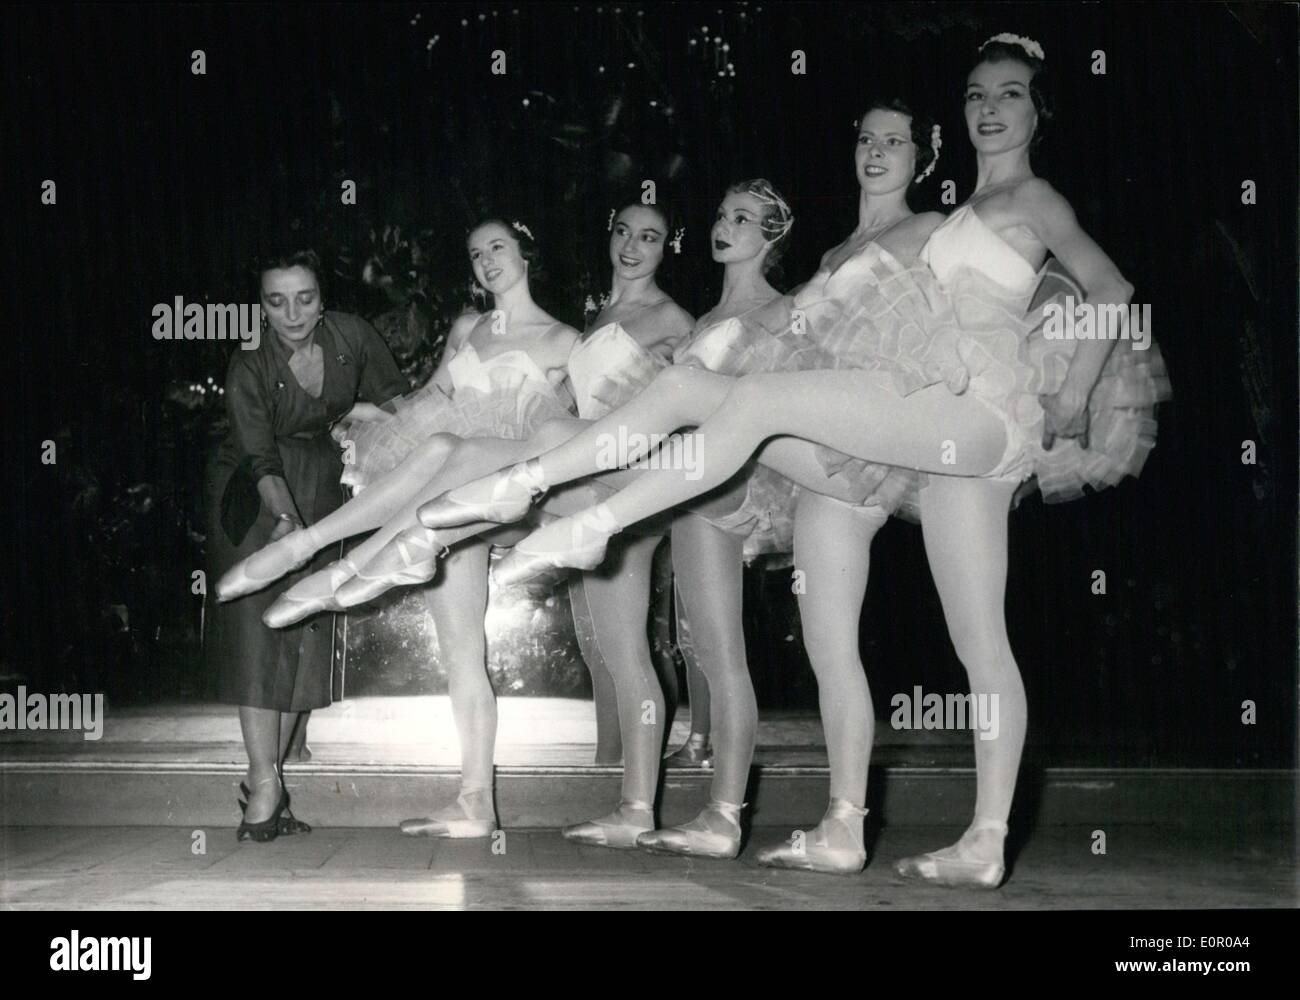 Jun. 03, 1957 - Suzanne Lorcia Inspects the Opera's Ballet Dancers - Stock Image